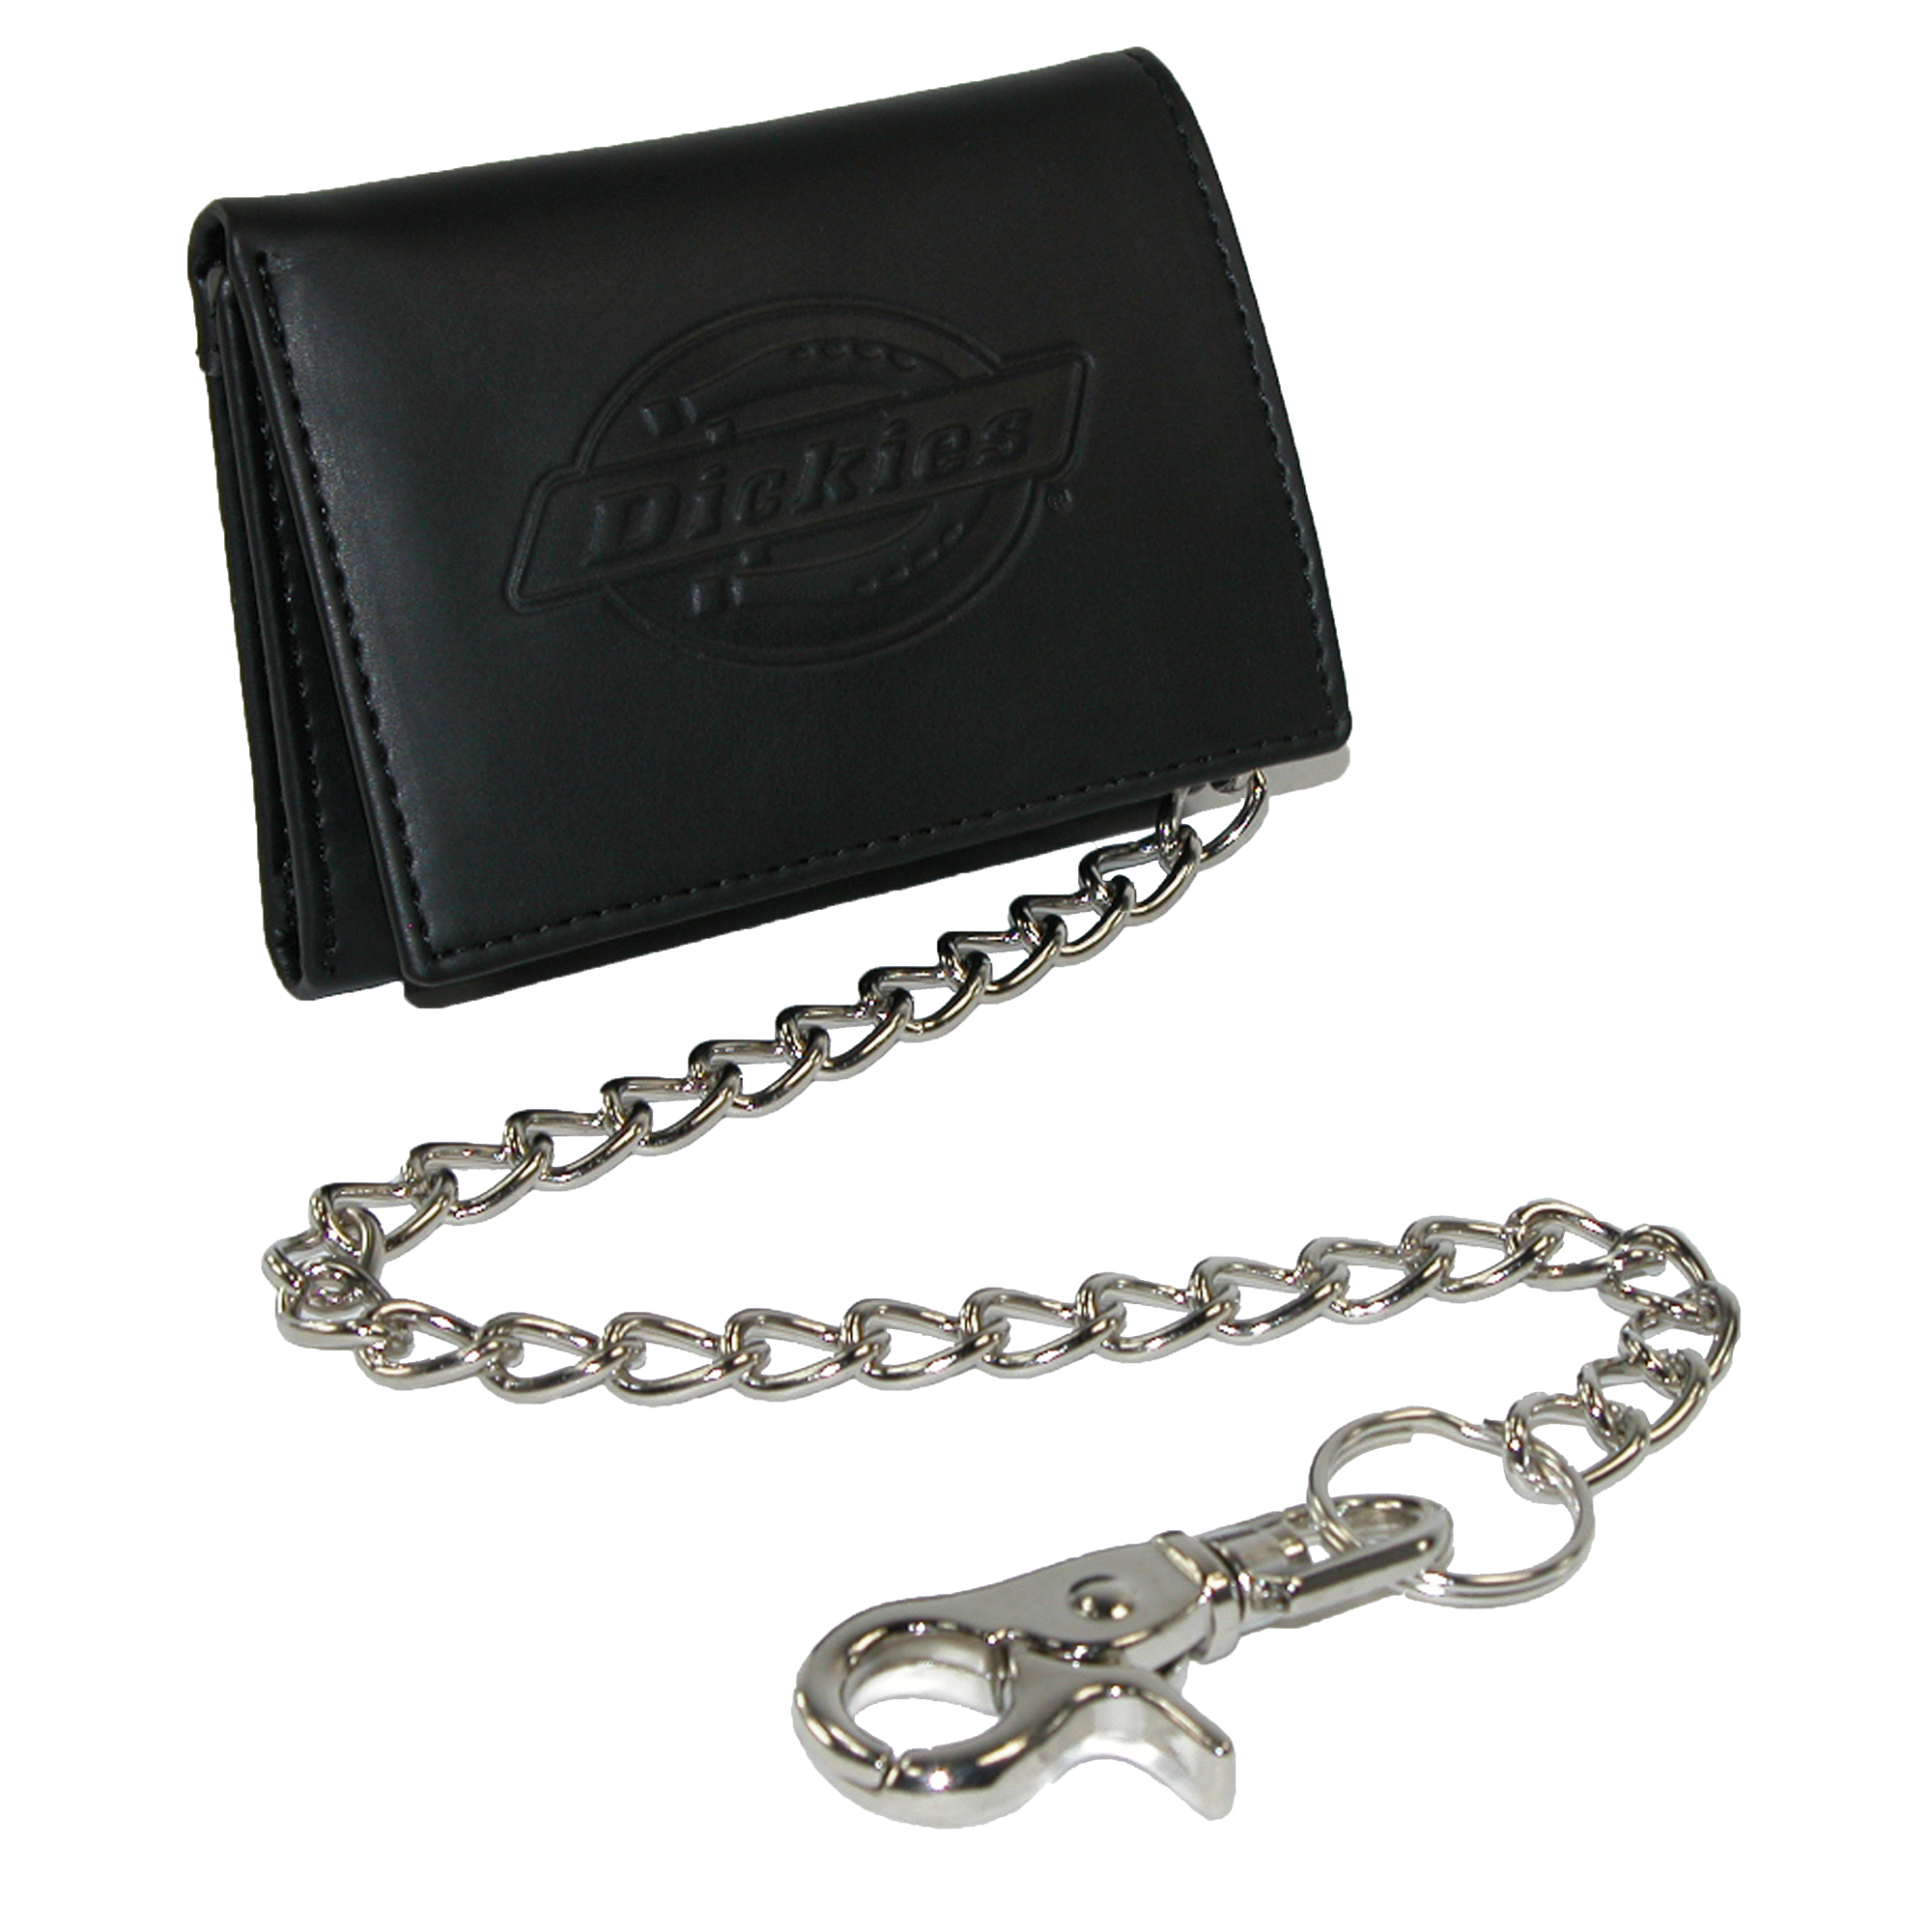 Dickies Men's Leather Trifold Chain Wallet